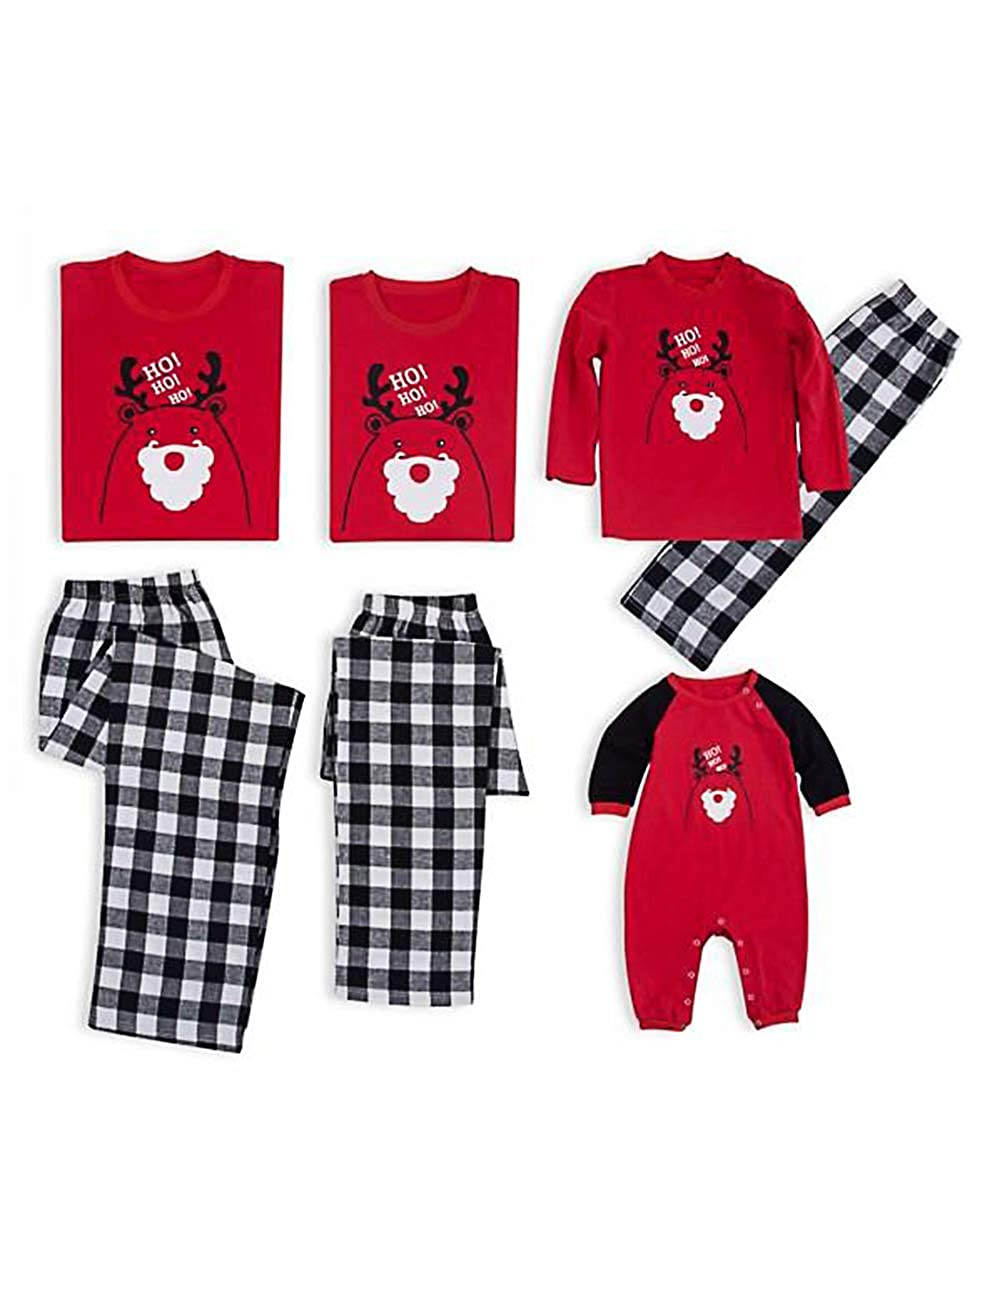 BESBOMIG Xmas Family Matching Christmas Pajamas Set - Breathable Top and Long Pants